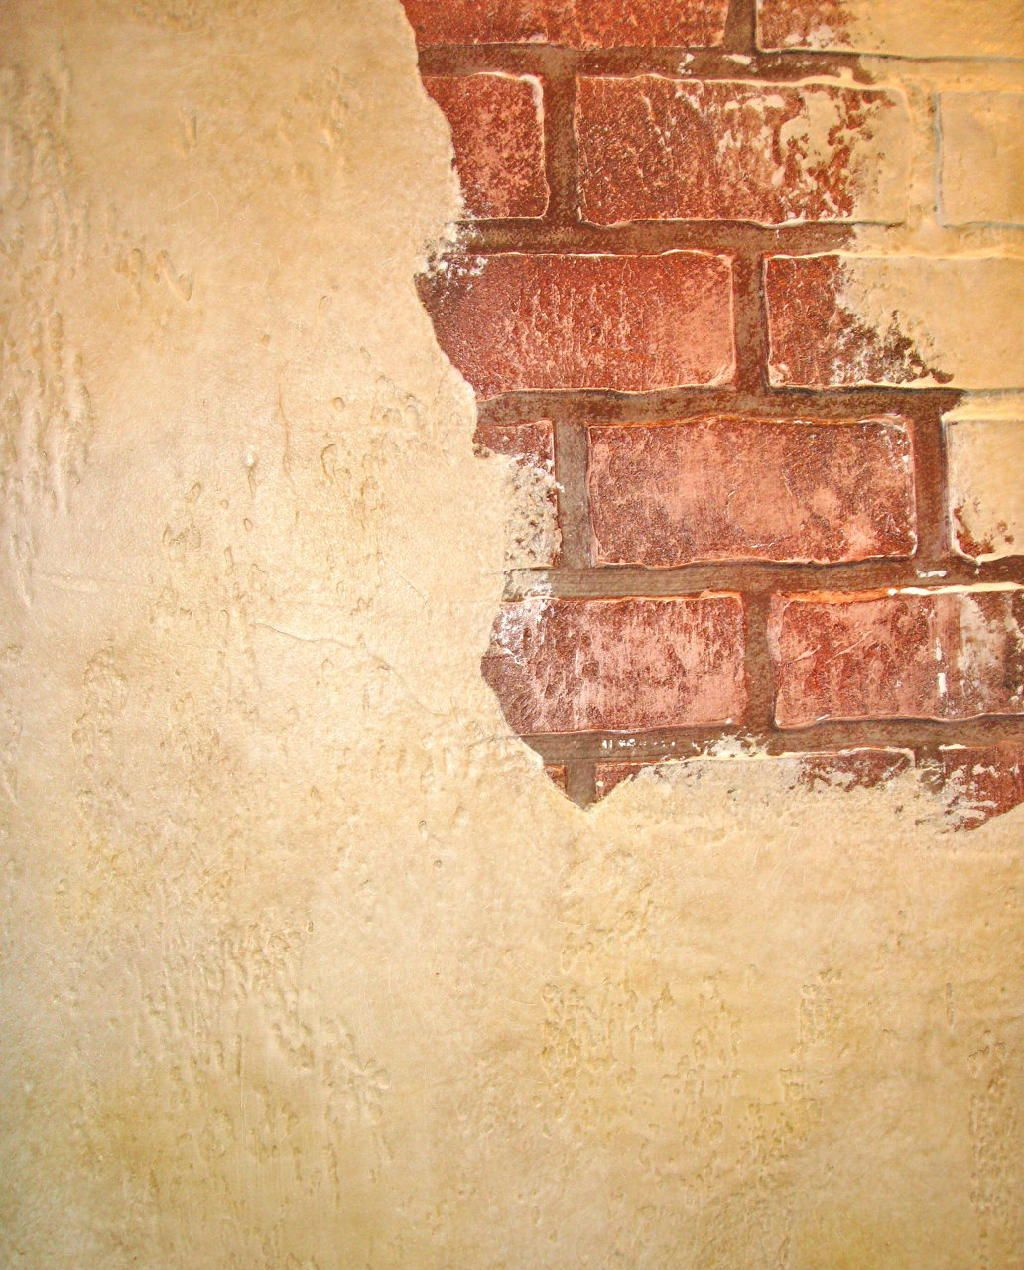 Faux Painting Cracked Walls Old Brick Wall Faux Walls Pinterest Cracked Wall Faux